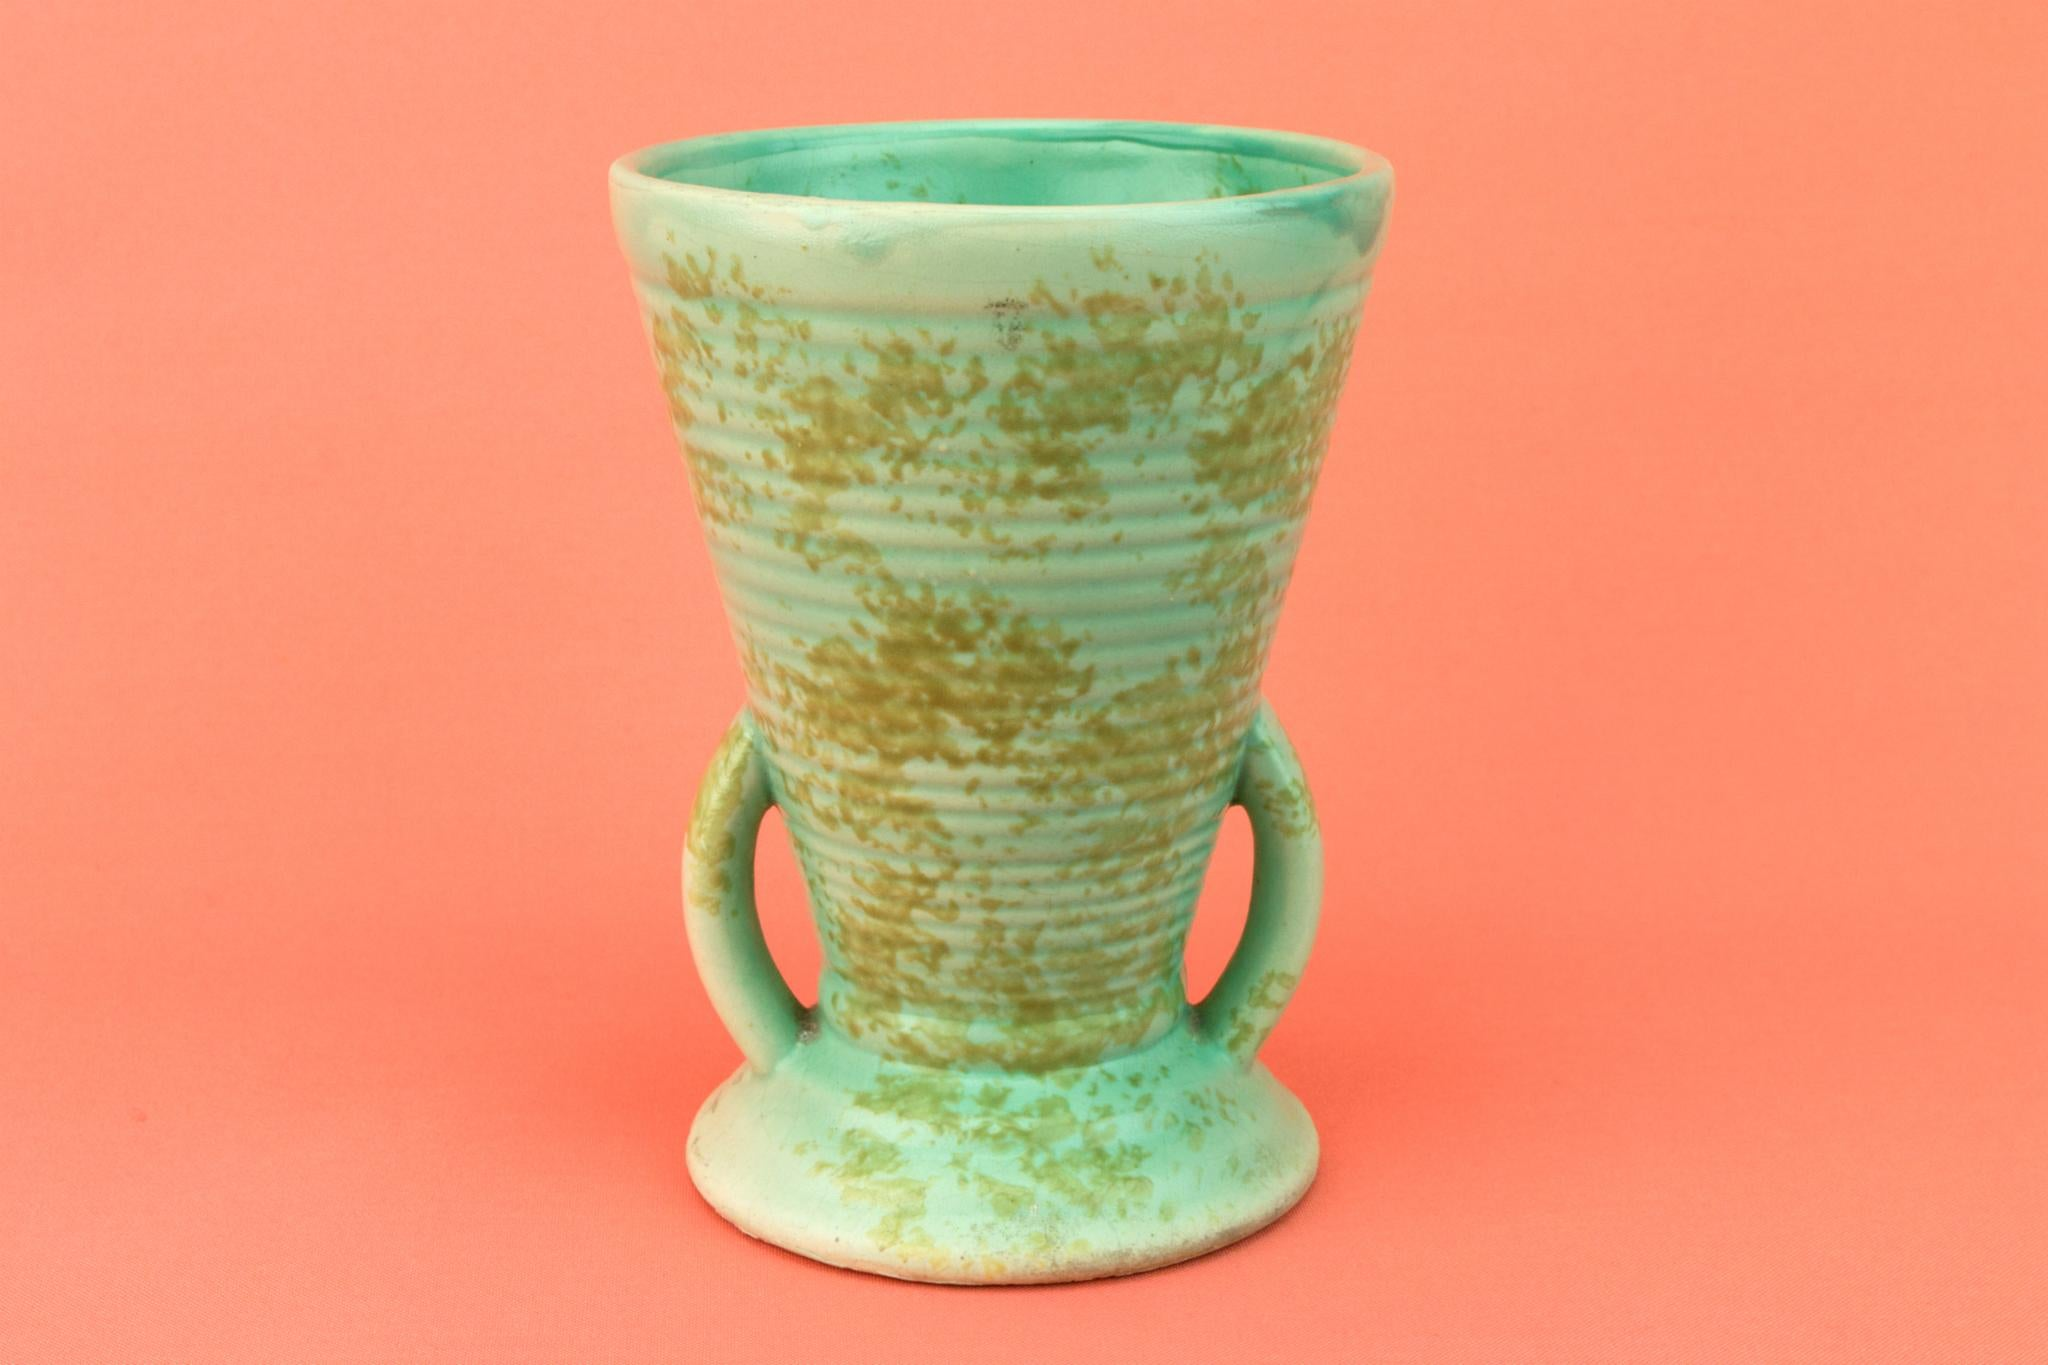 Vase in Art Deco Mottled Green, English 1930s